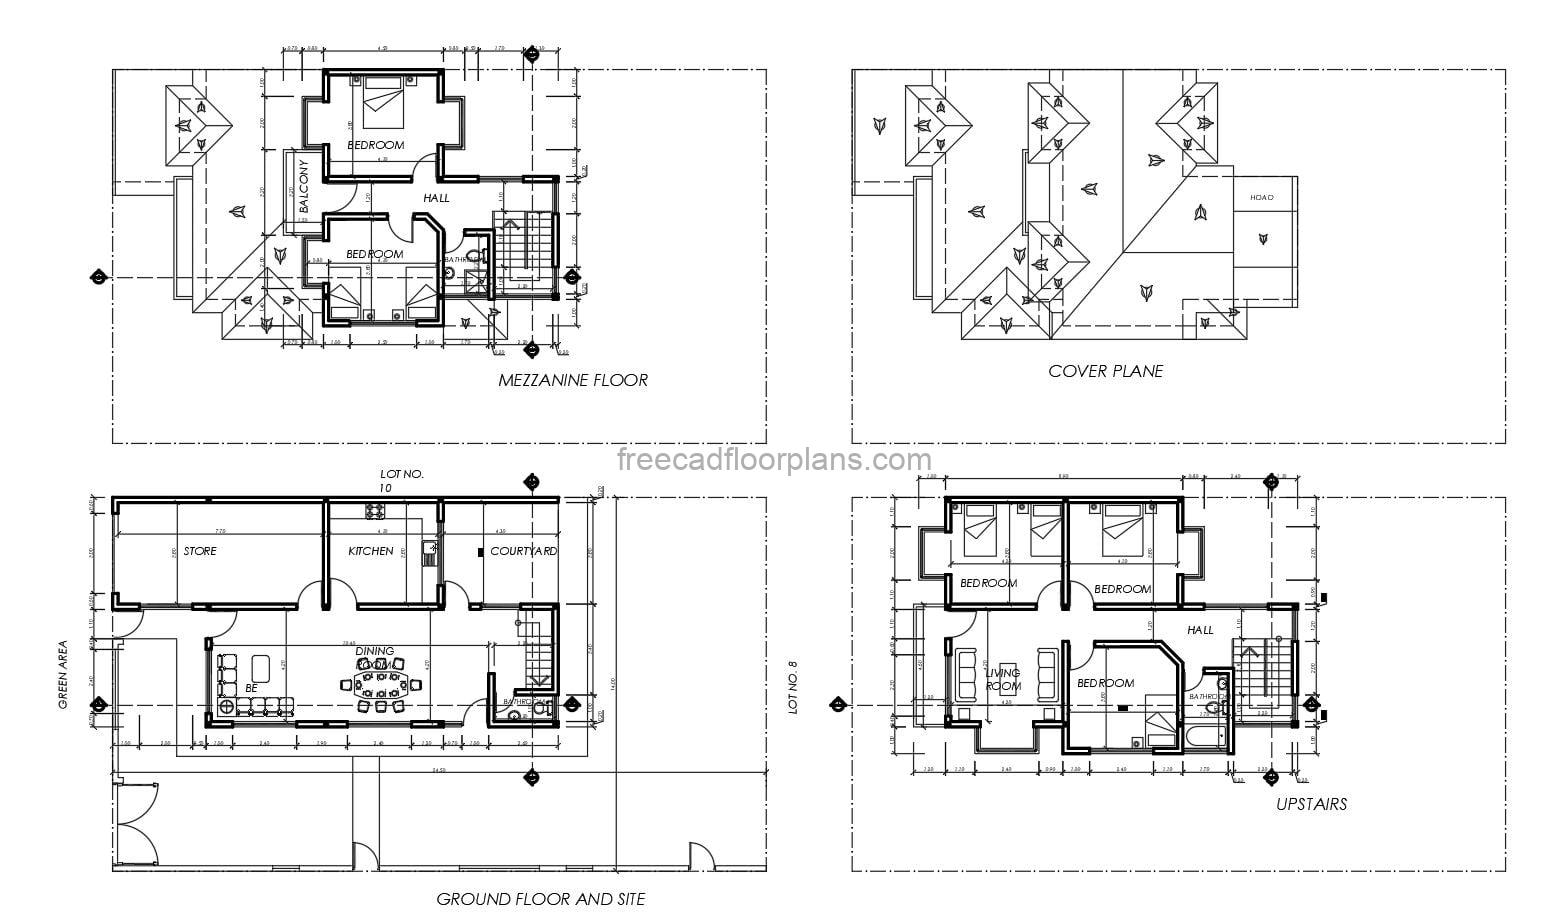 architectural and dimensioned plans of a three level residence with five bedrooms in total, autocad block plans in interior, facades, sections, architectural floor plan, dimensioned, construction details. free downloadable plans in autocad dwg format.